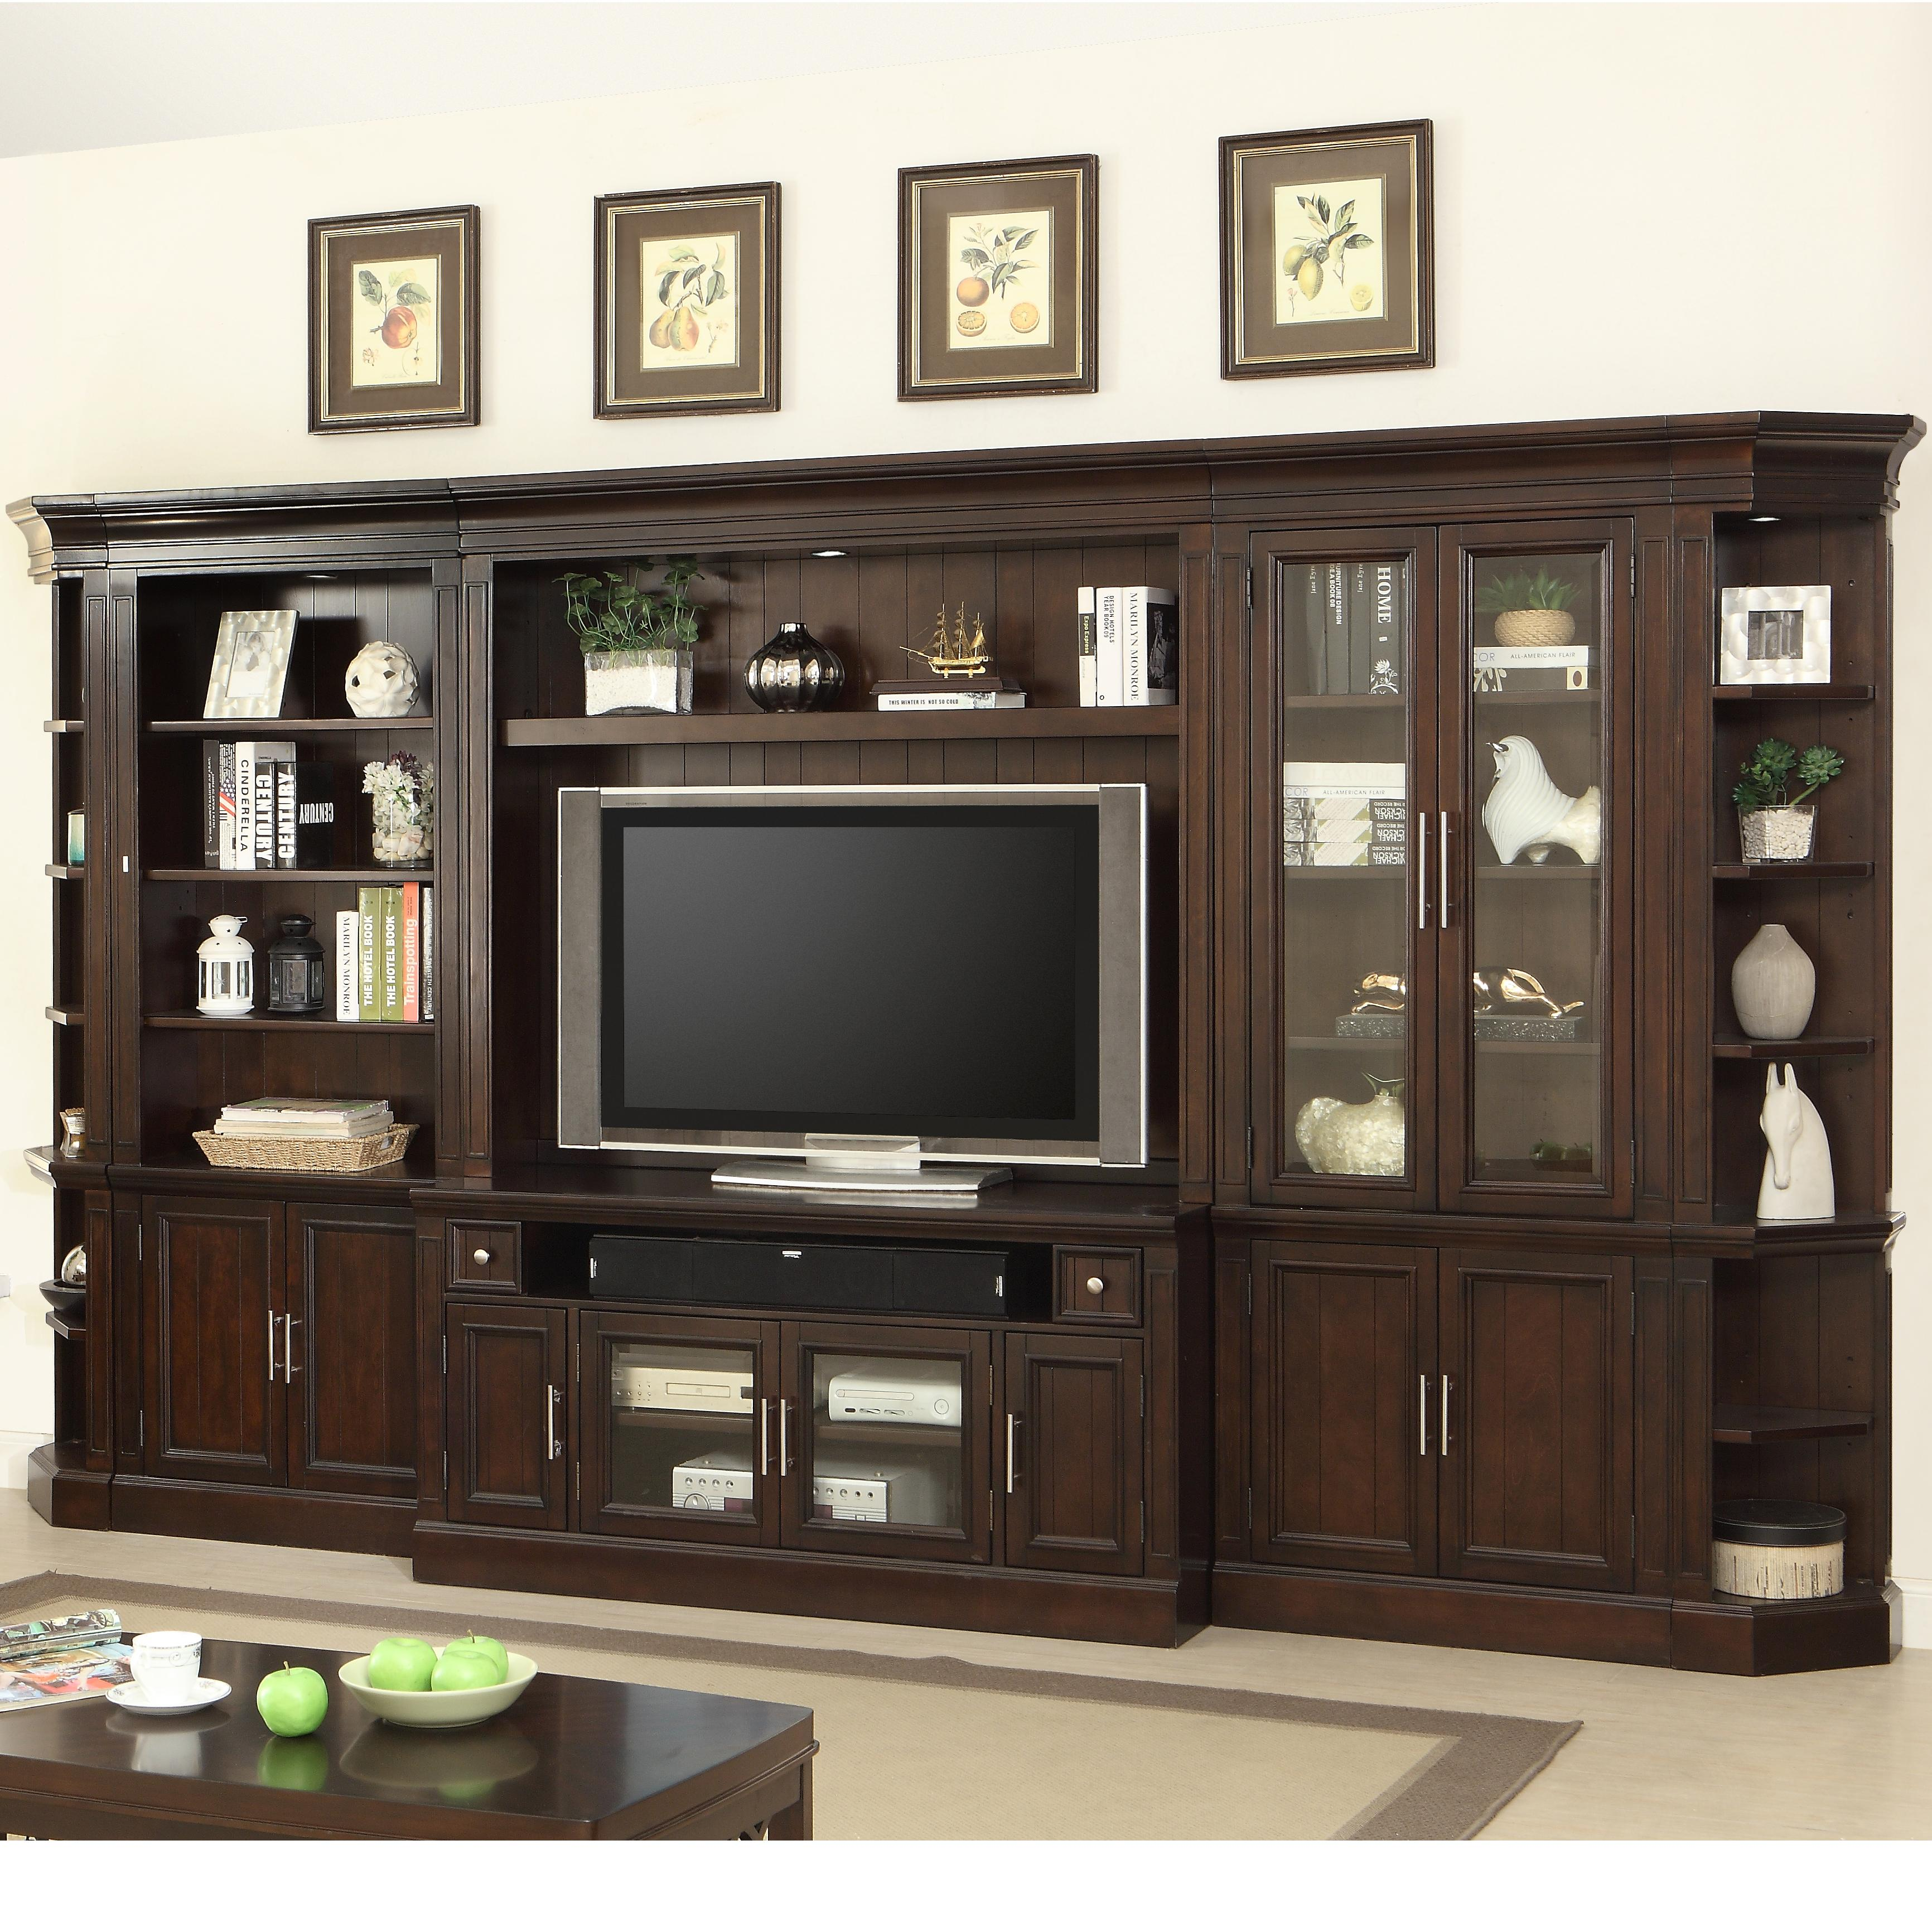 Parker House Stanford Wall Unit - Item Number: STA Wall Unit 9